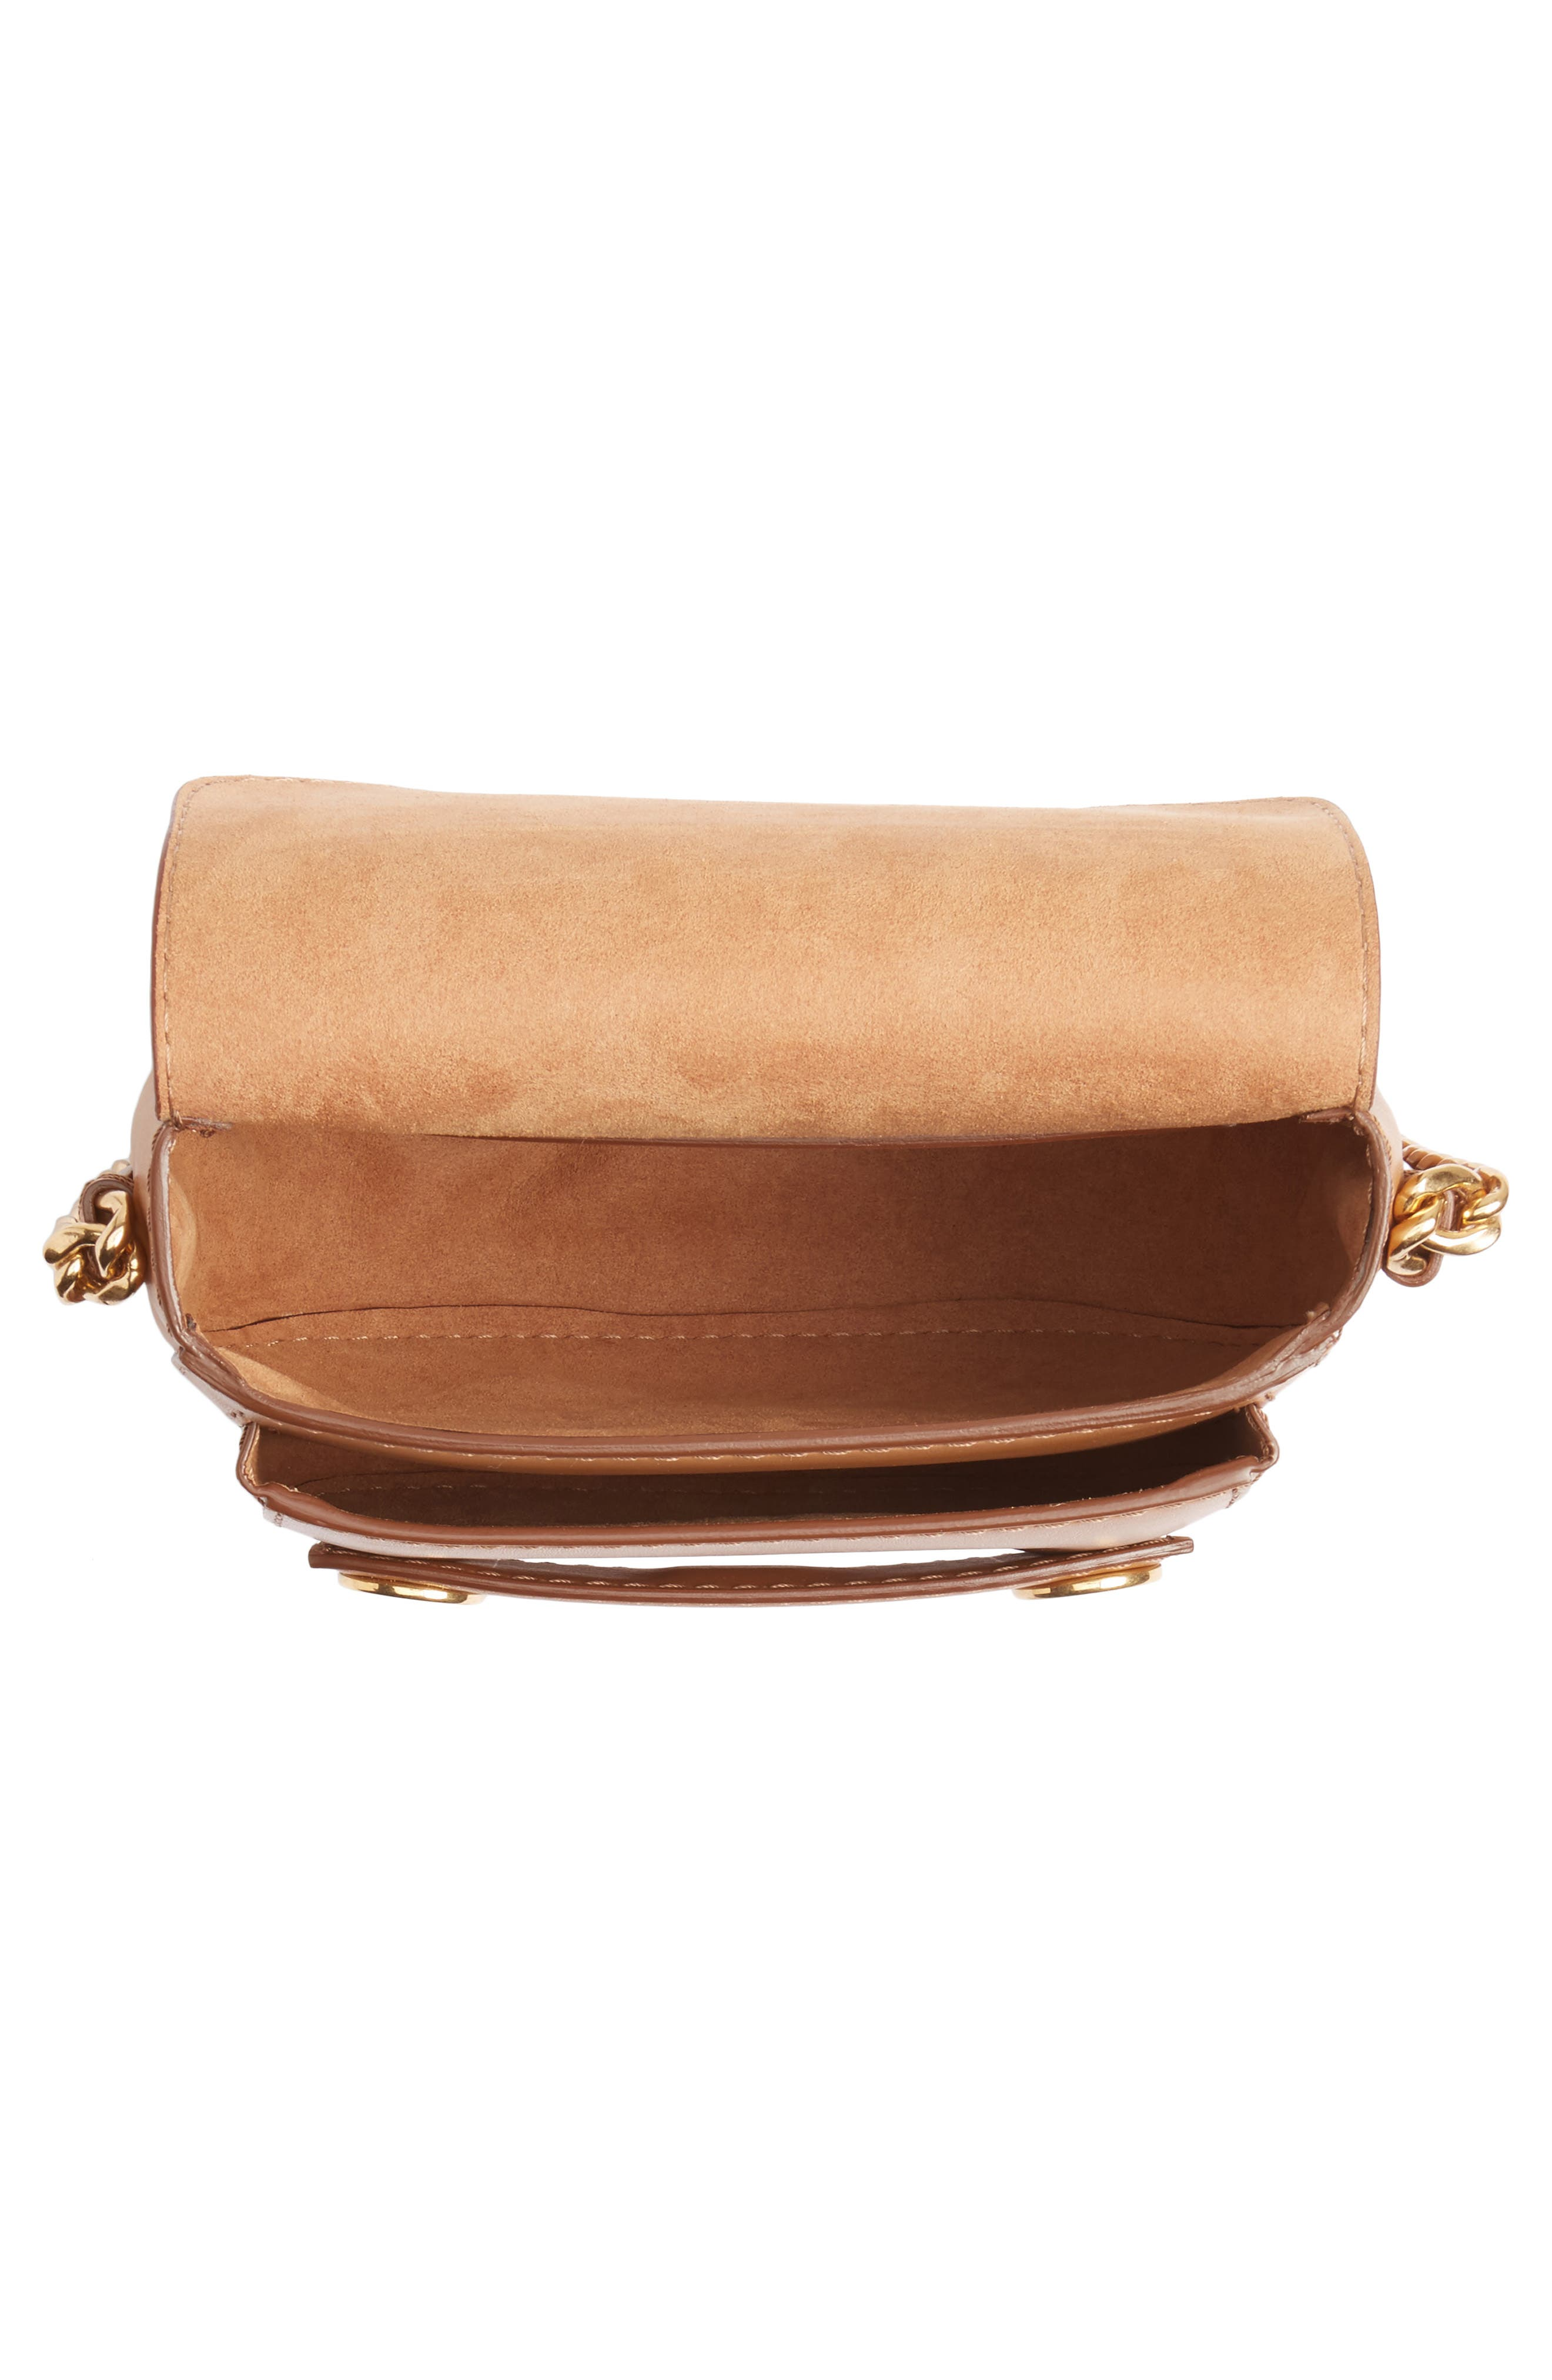 Textured Faux Leather Crossbody Bag,                             Alternate thumbnail 4, color,                             Camel